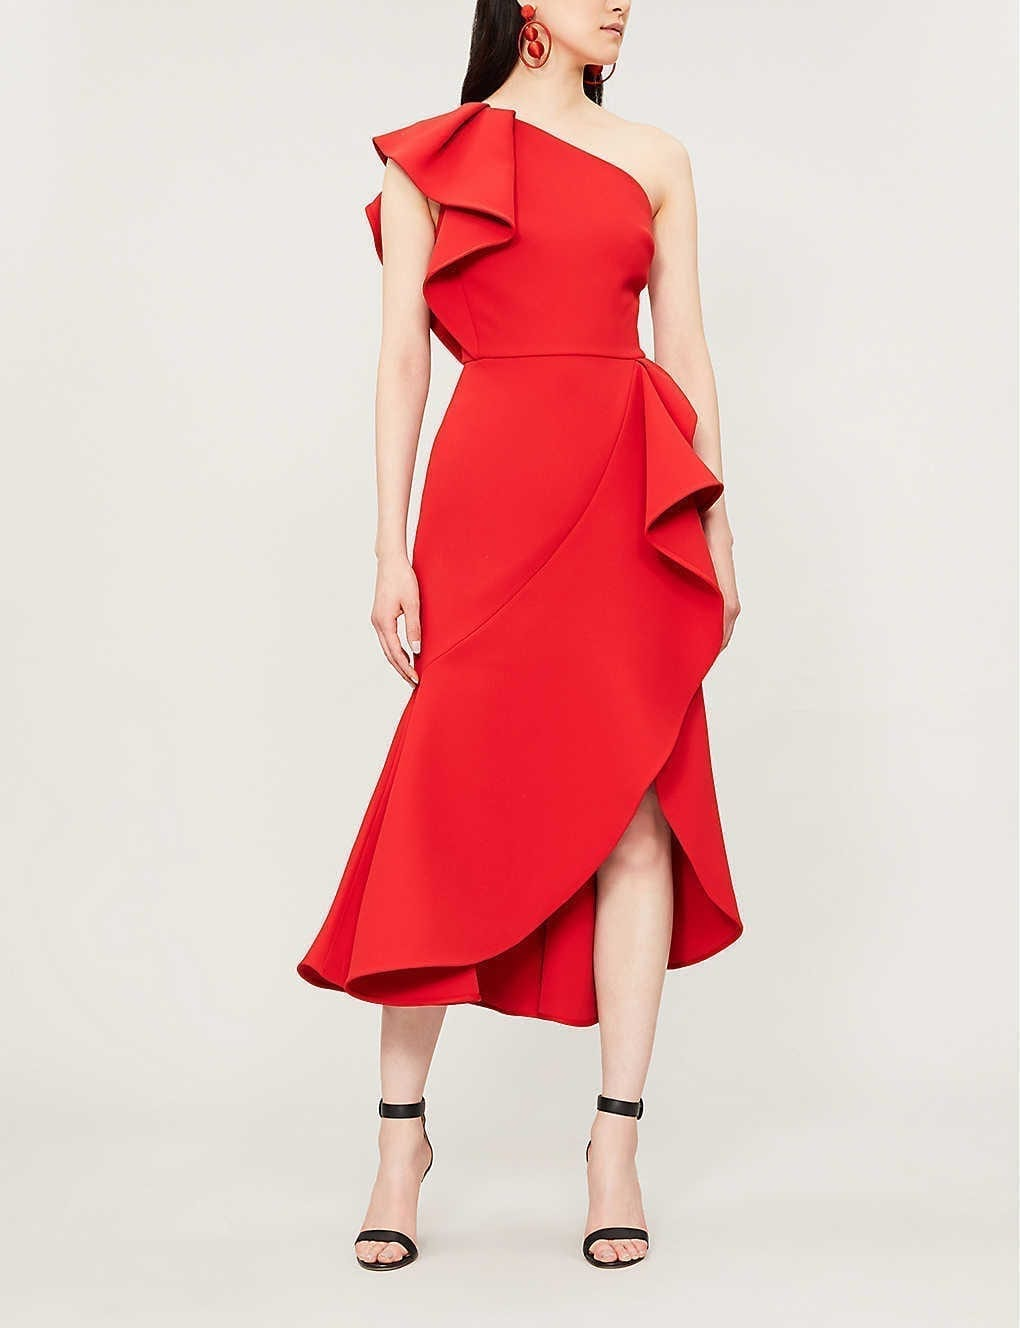 ELIE SAAB Ruffled Asymmetric Woven Midi Red Dress